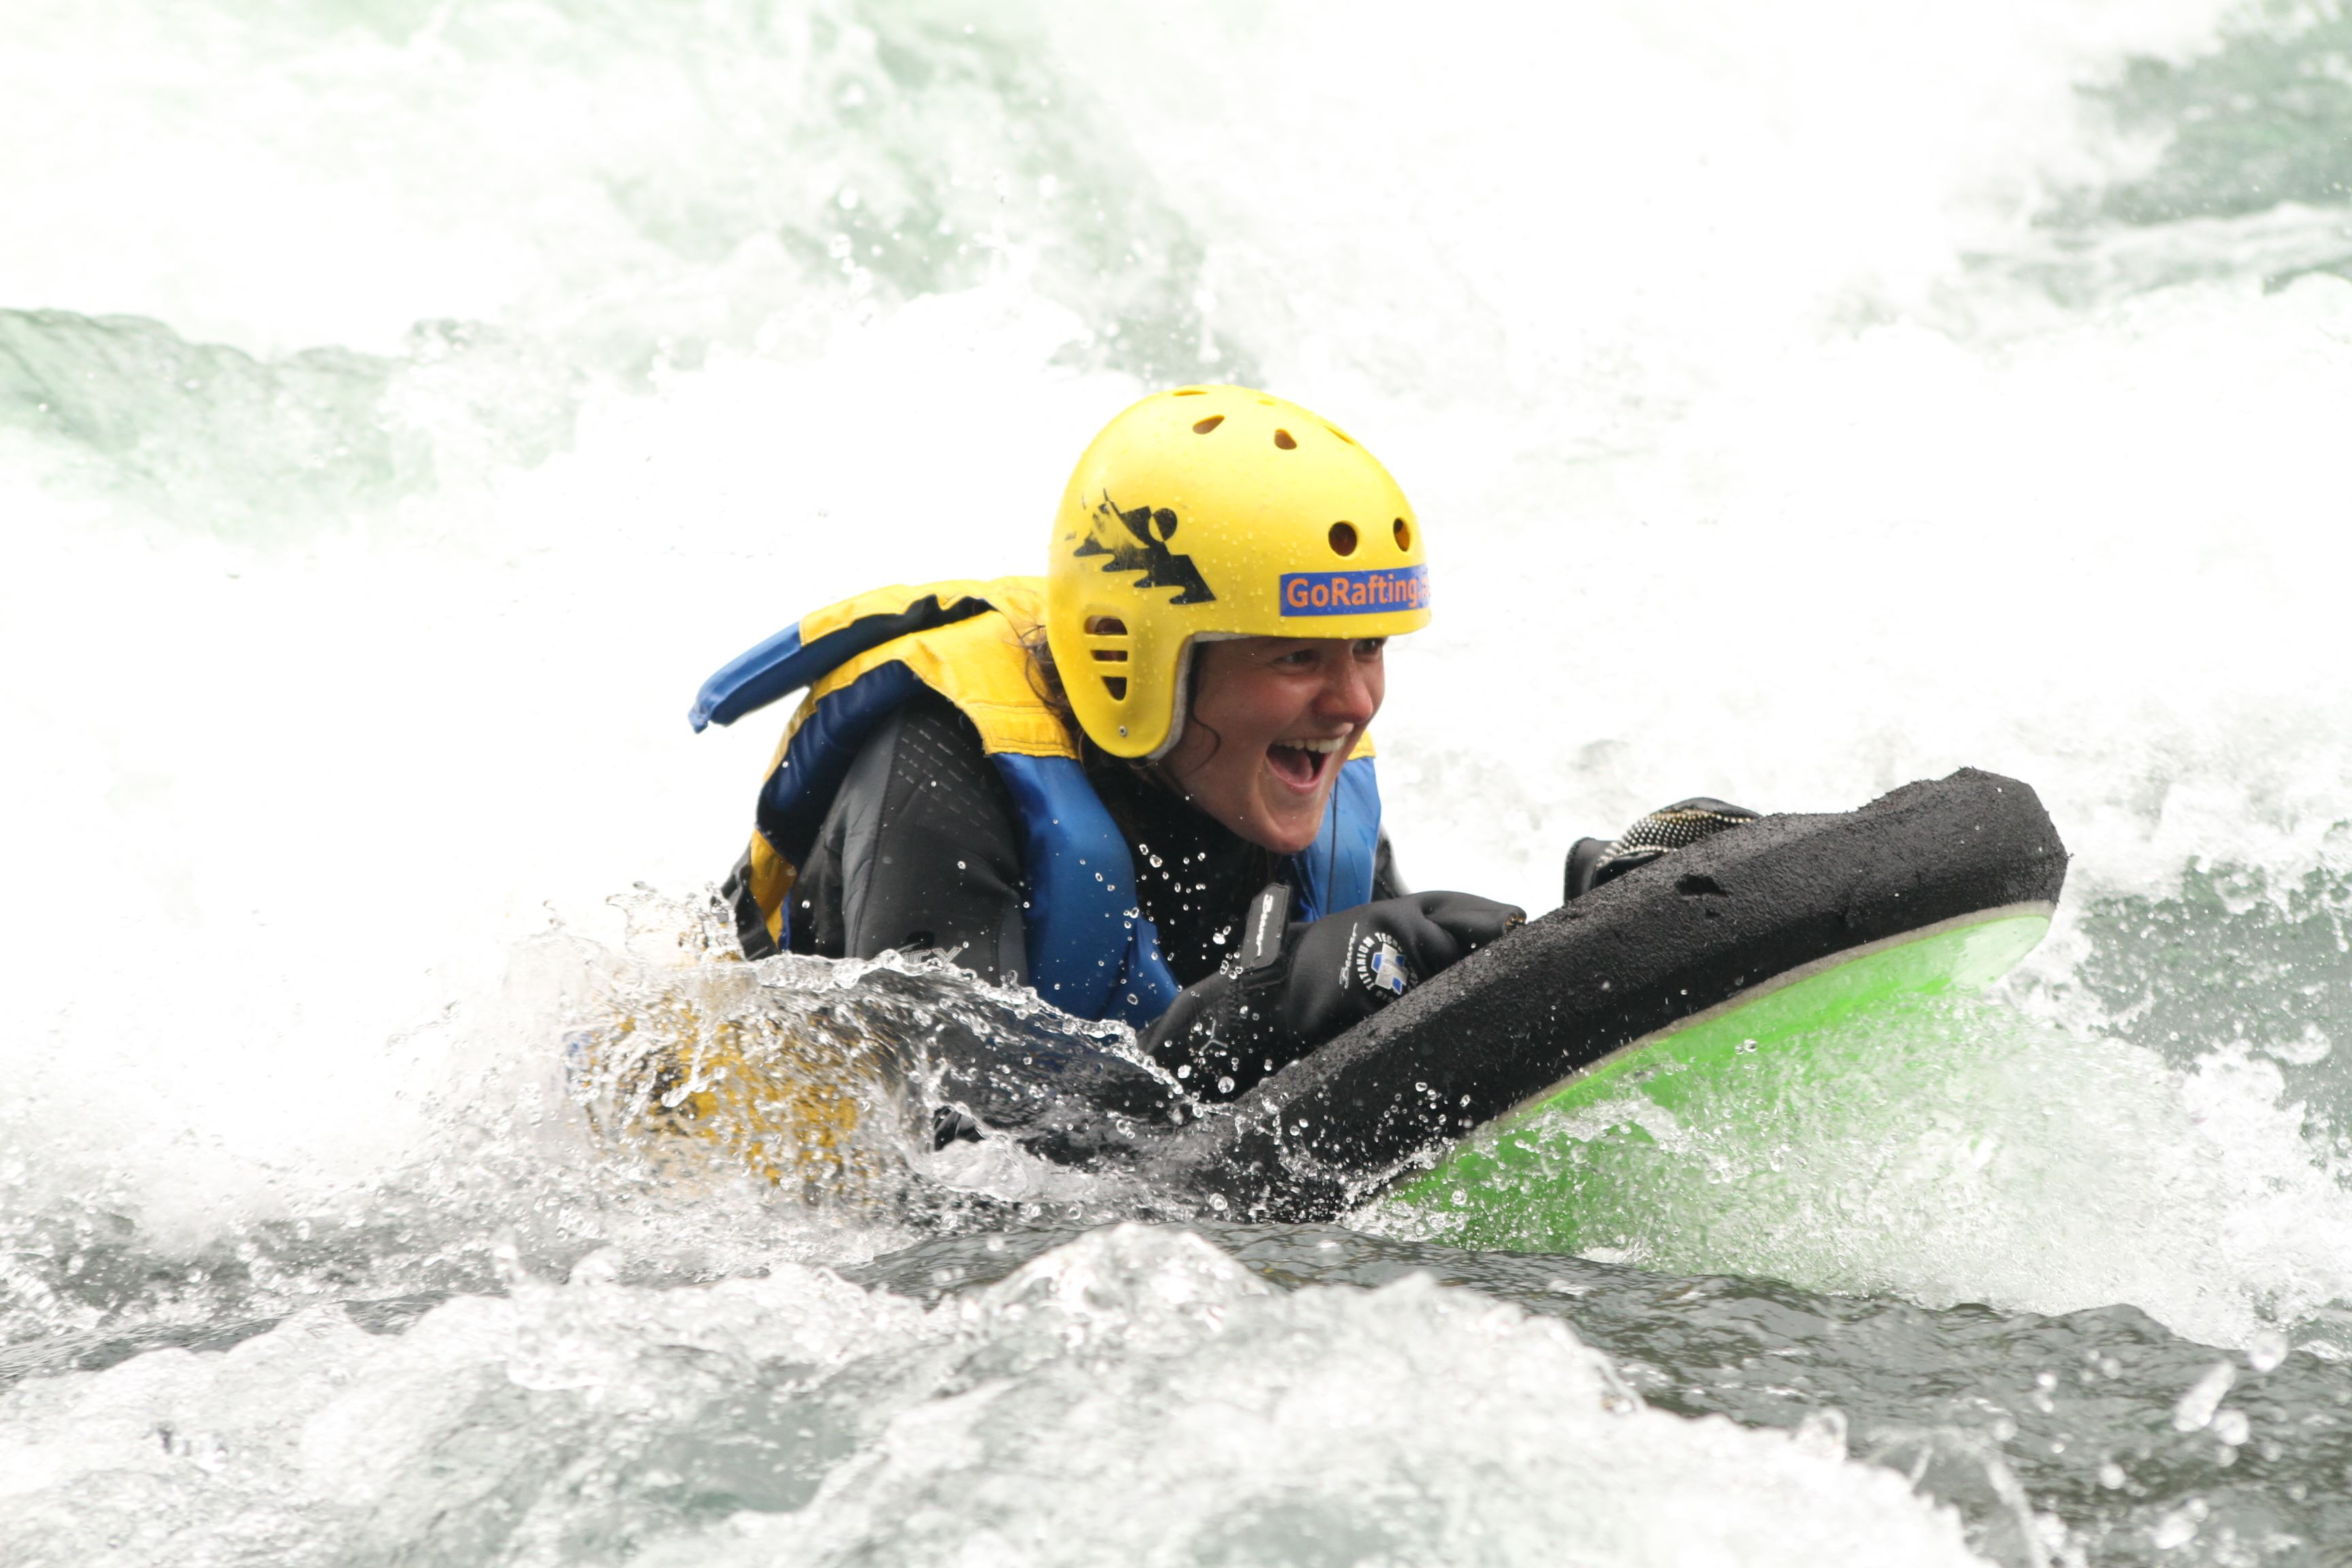 Fifty/Fifty, Rafting and Riverboarding